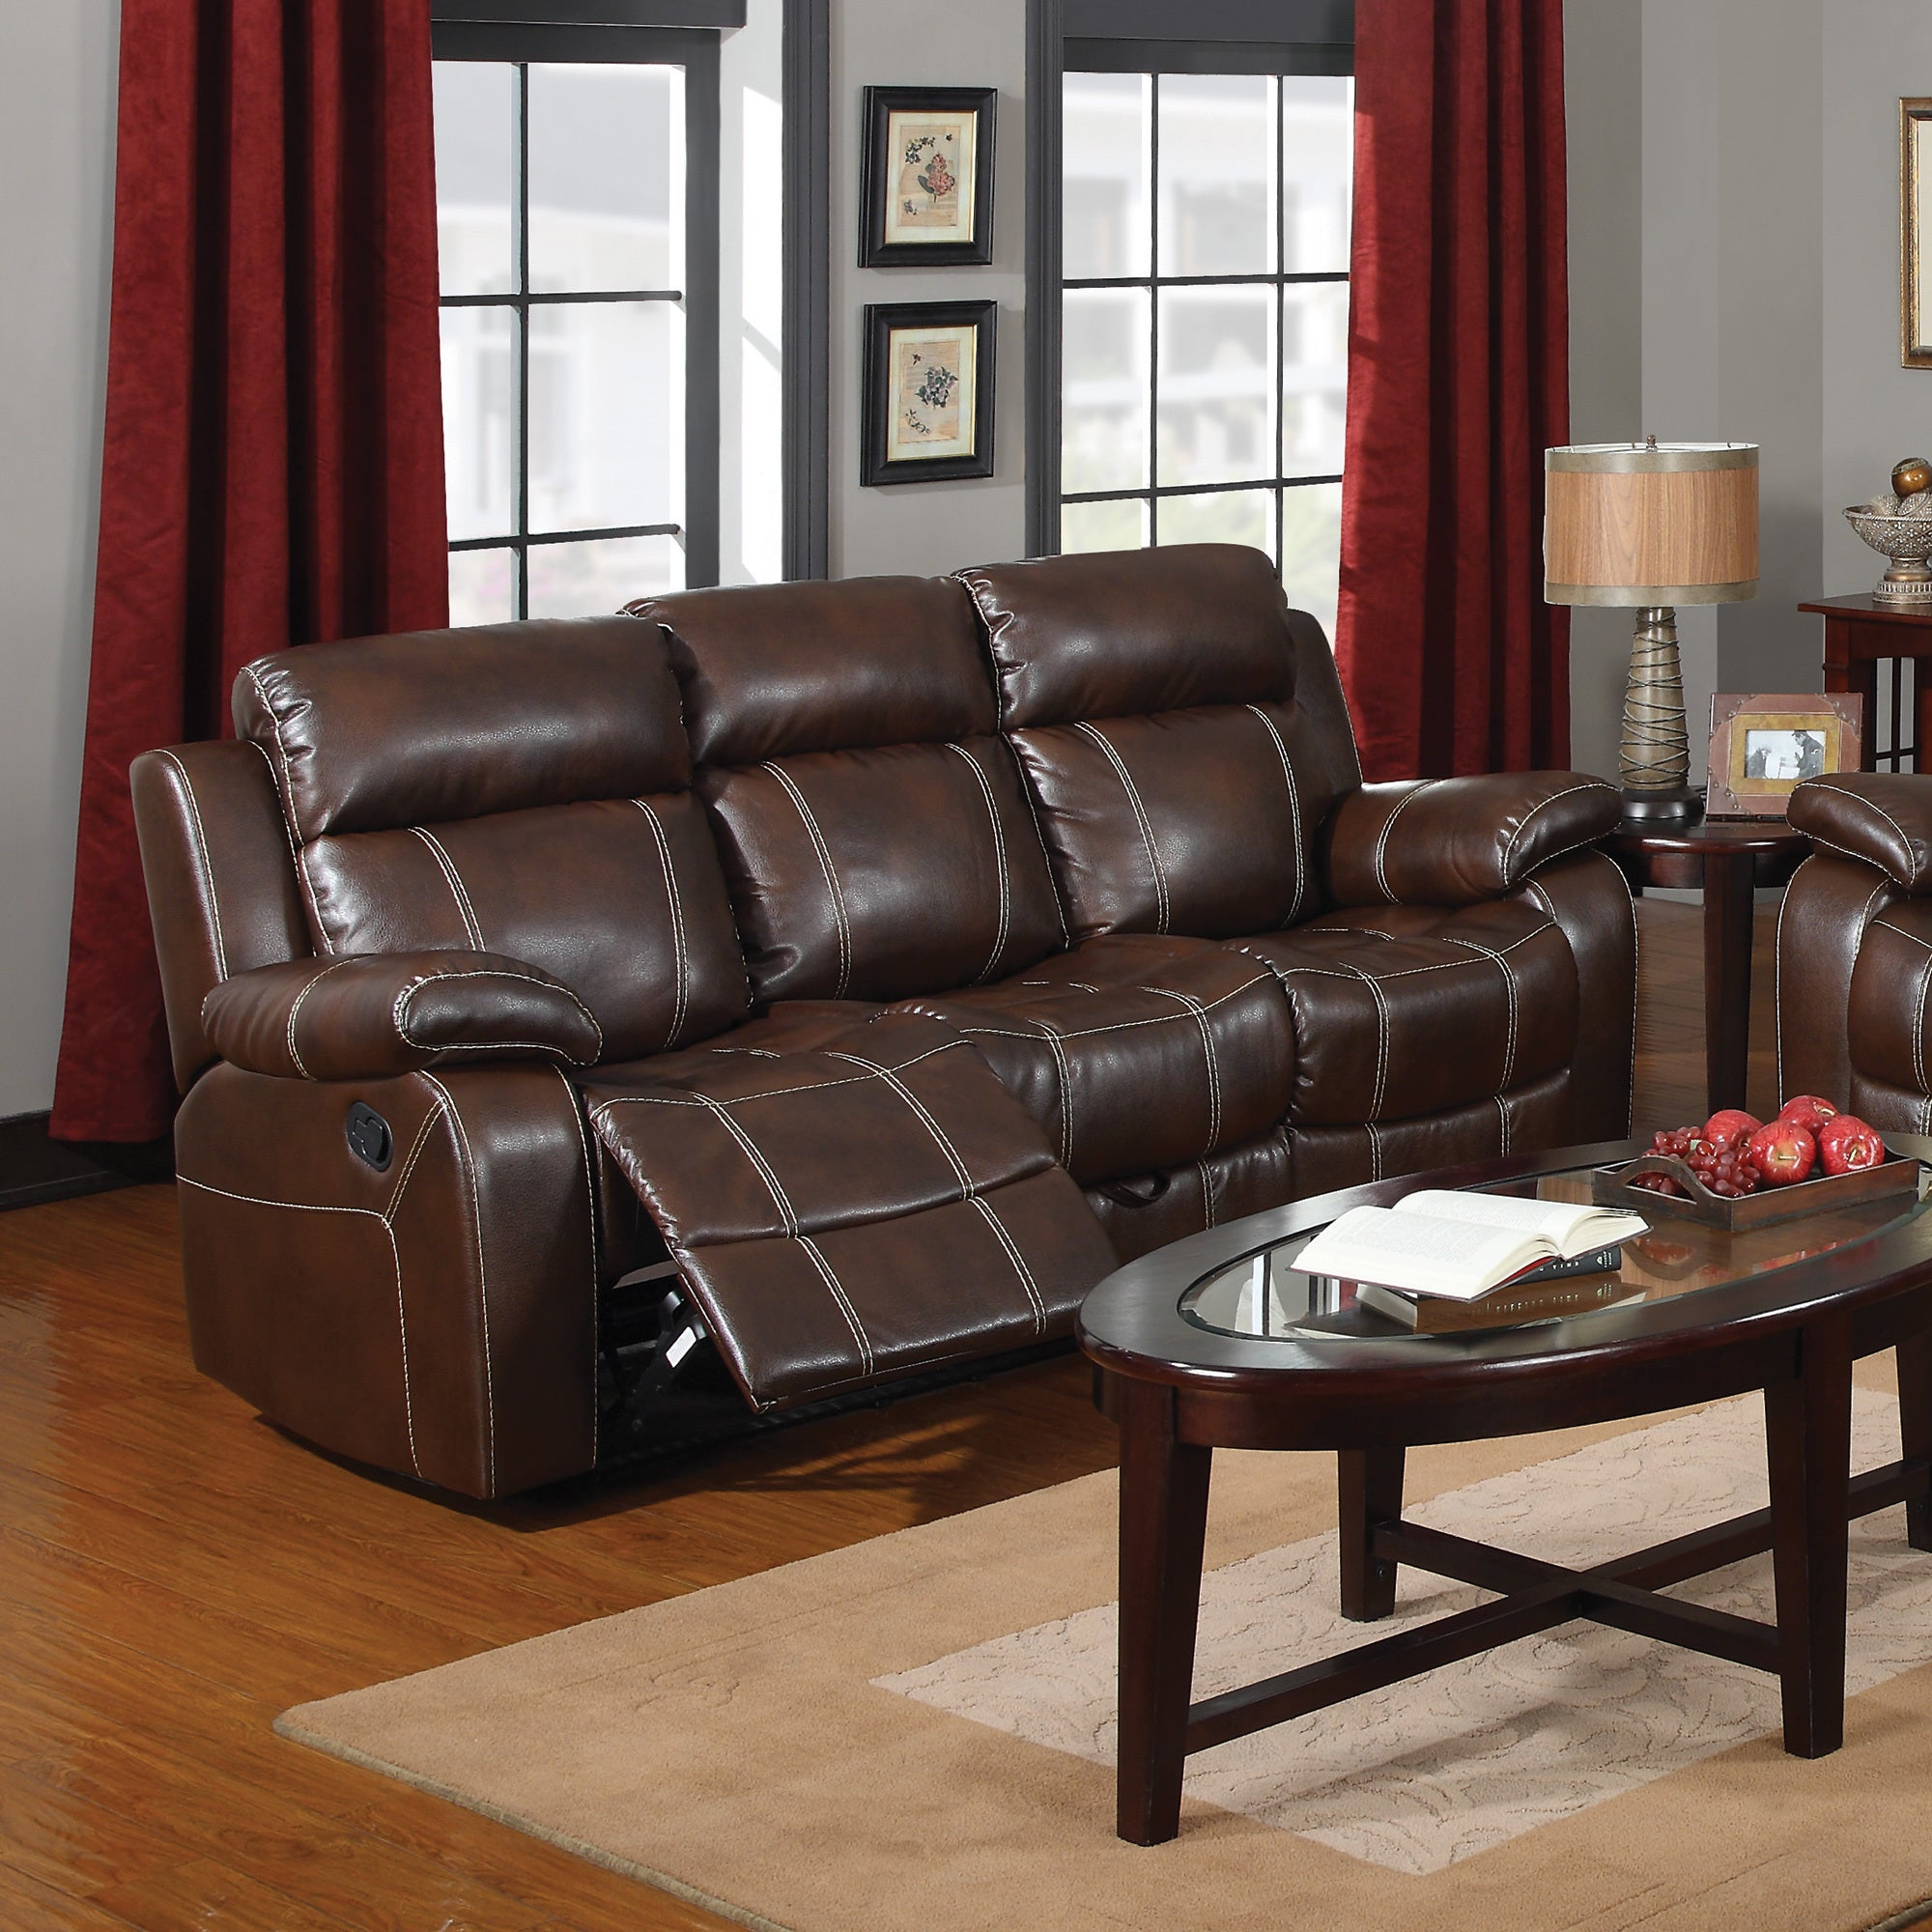 Coaster Company Brown Leather Motion Sofa Free Shipping Today 12190037